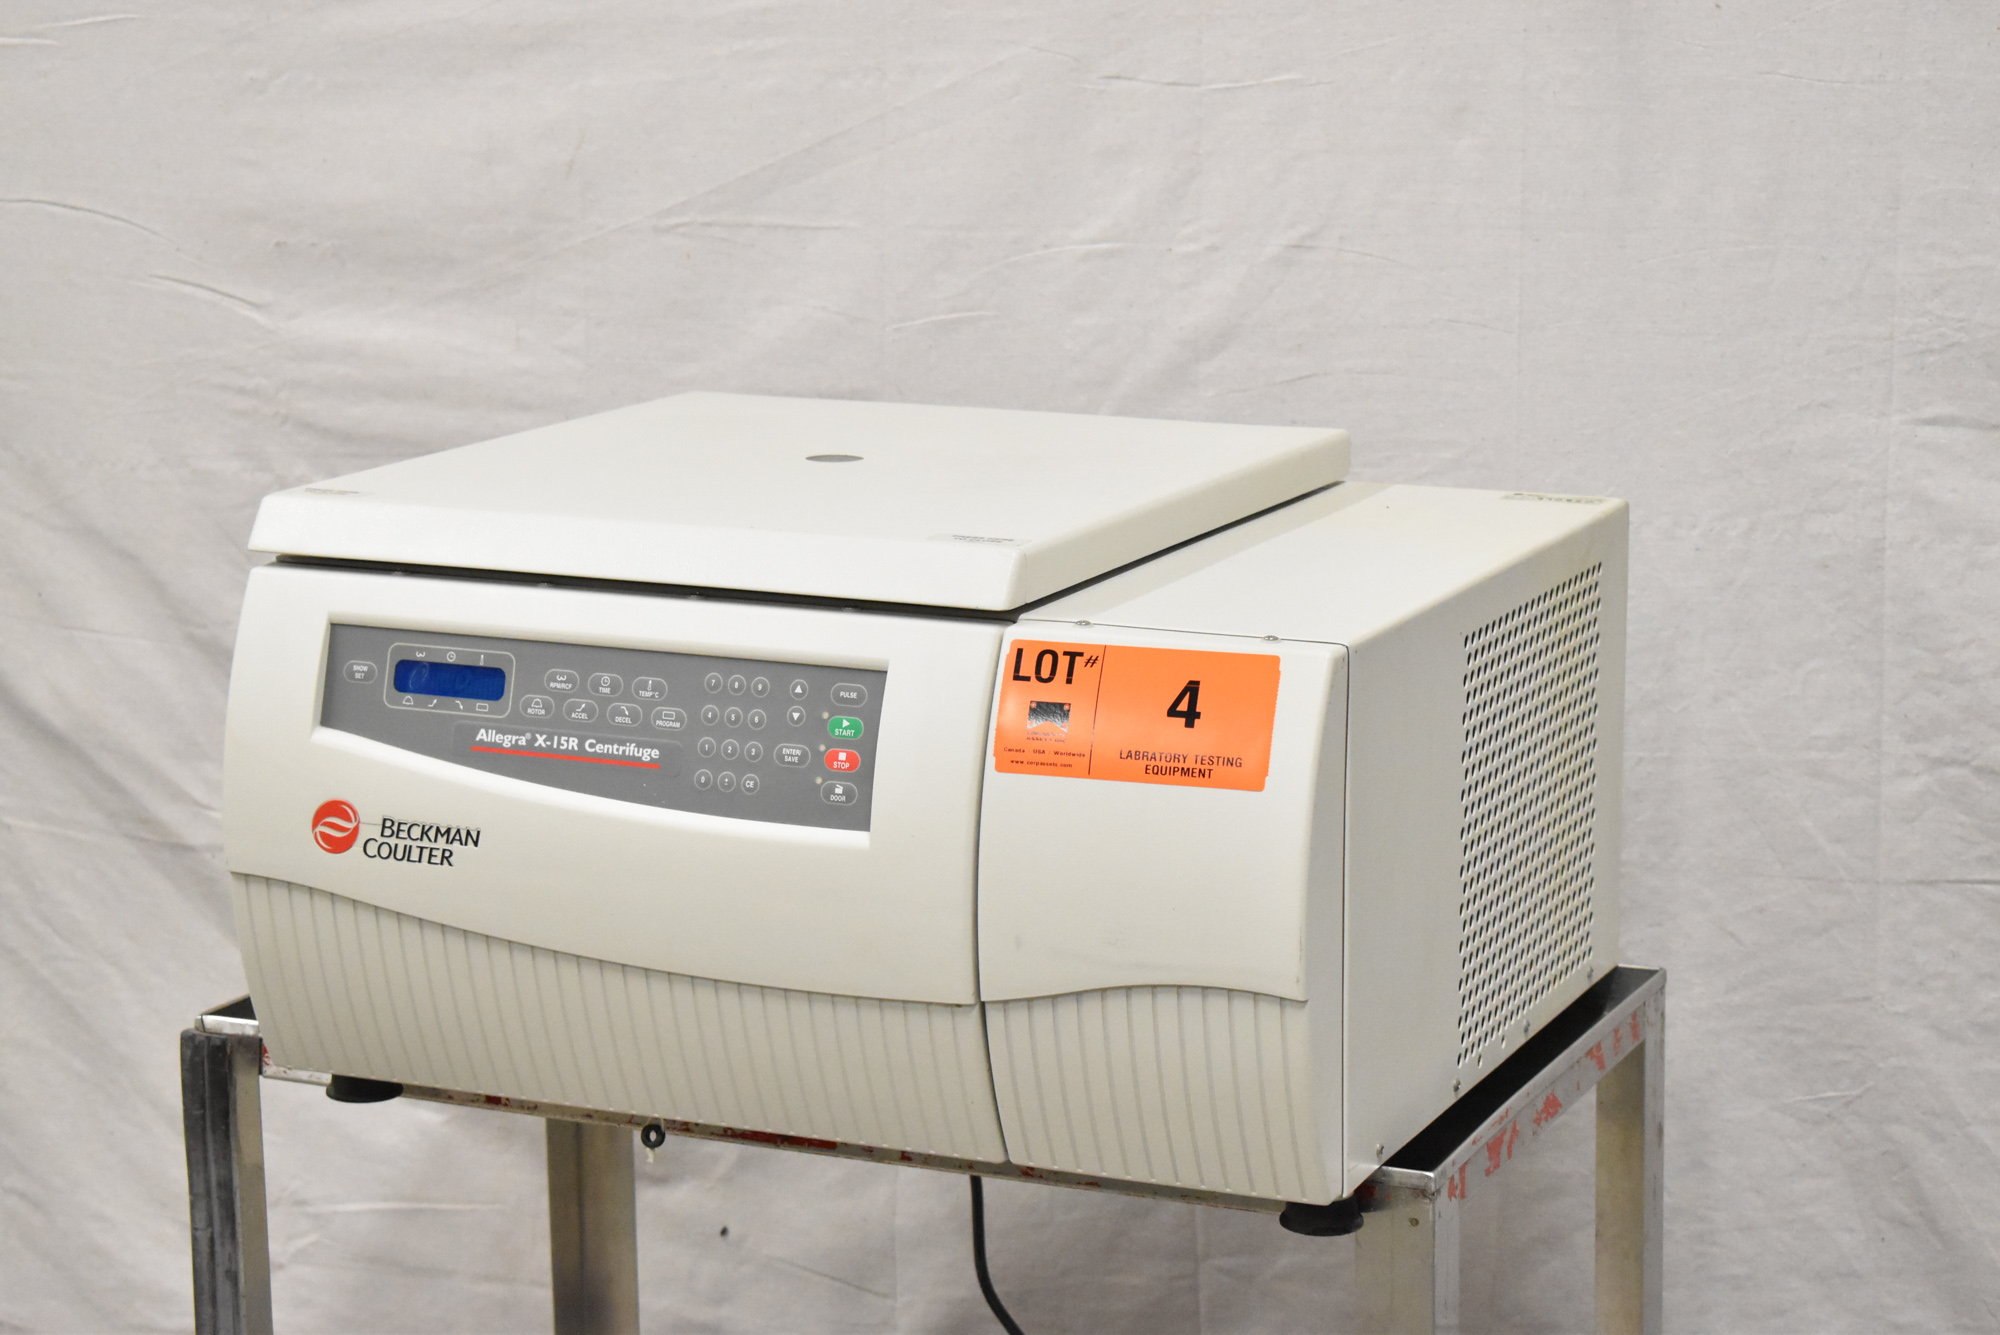 BECKMAN COULTER ALLEGRA X-15R BENCHTOP CENTRIFUGE WITH DIGITAL PROGRAMMABLE MICROPROCESSOR - Image 3 of 14